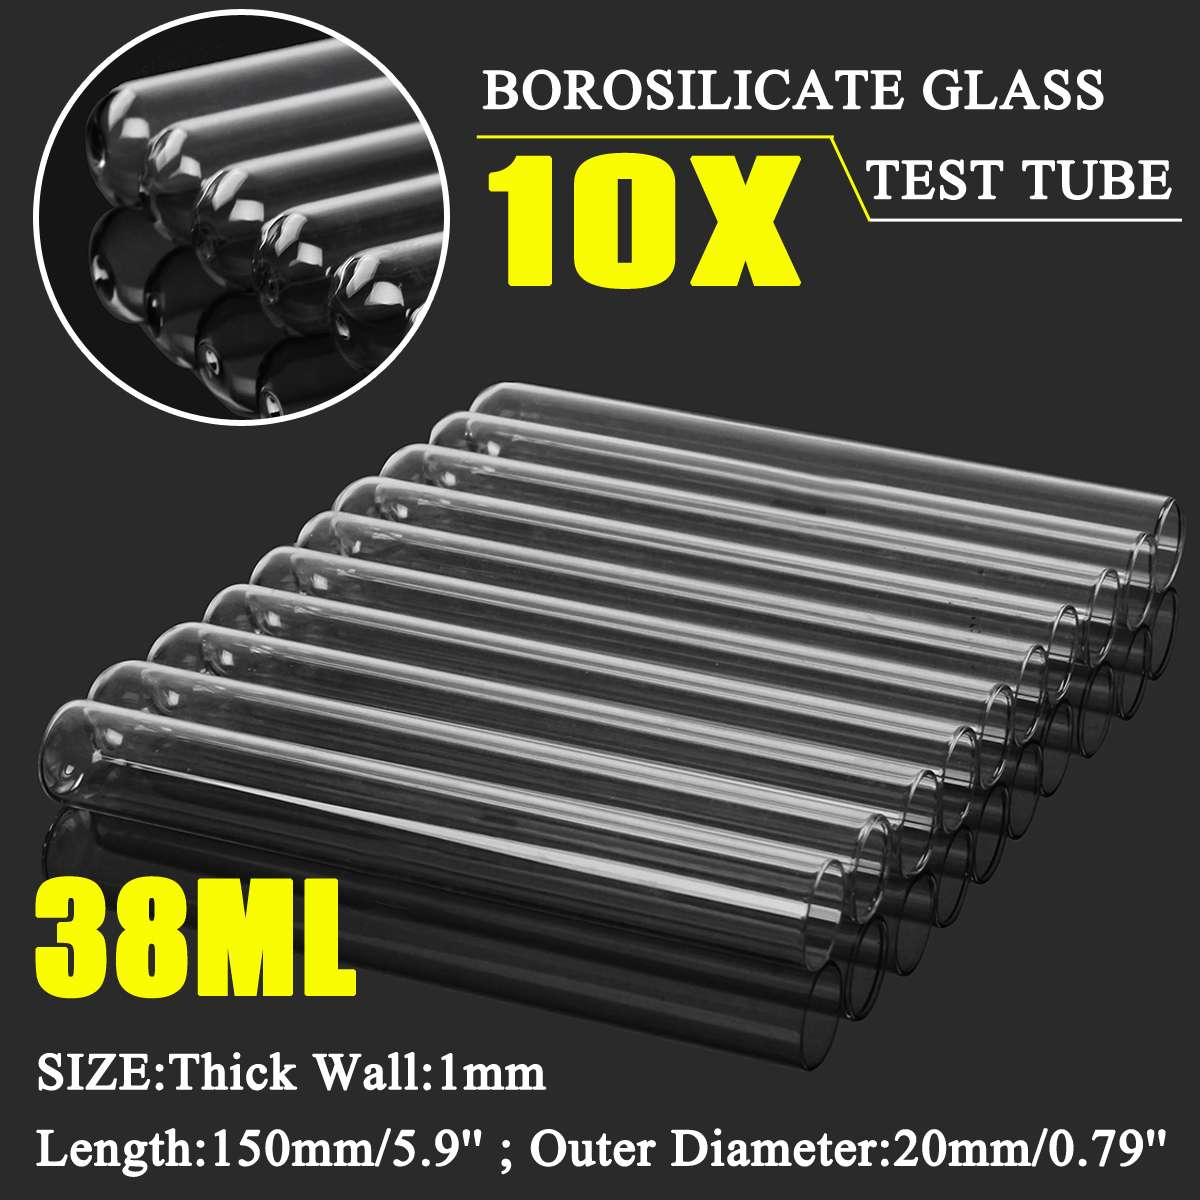 KICUTE 10Pcs 20x150mm Borosilicate Glass Test Tube Tubing Blowing Pyrex Tubes 38mL Thick Blowing Tube Lab Tubing School Factory